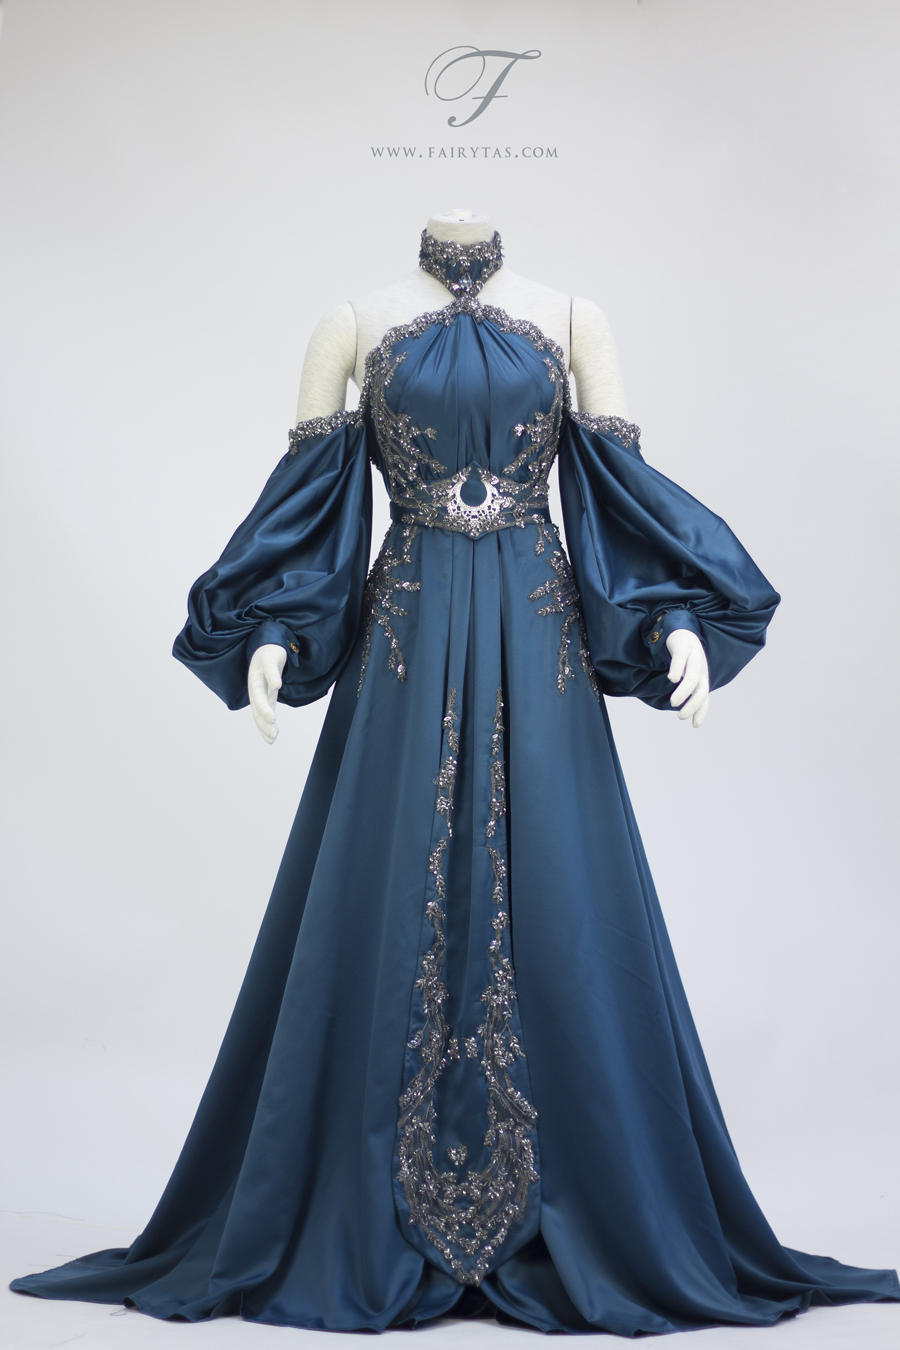 Northern Sky dress